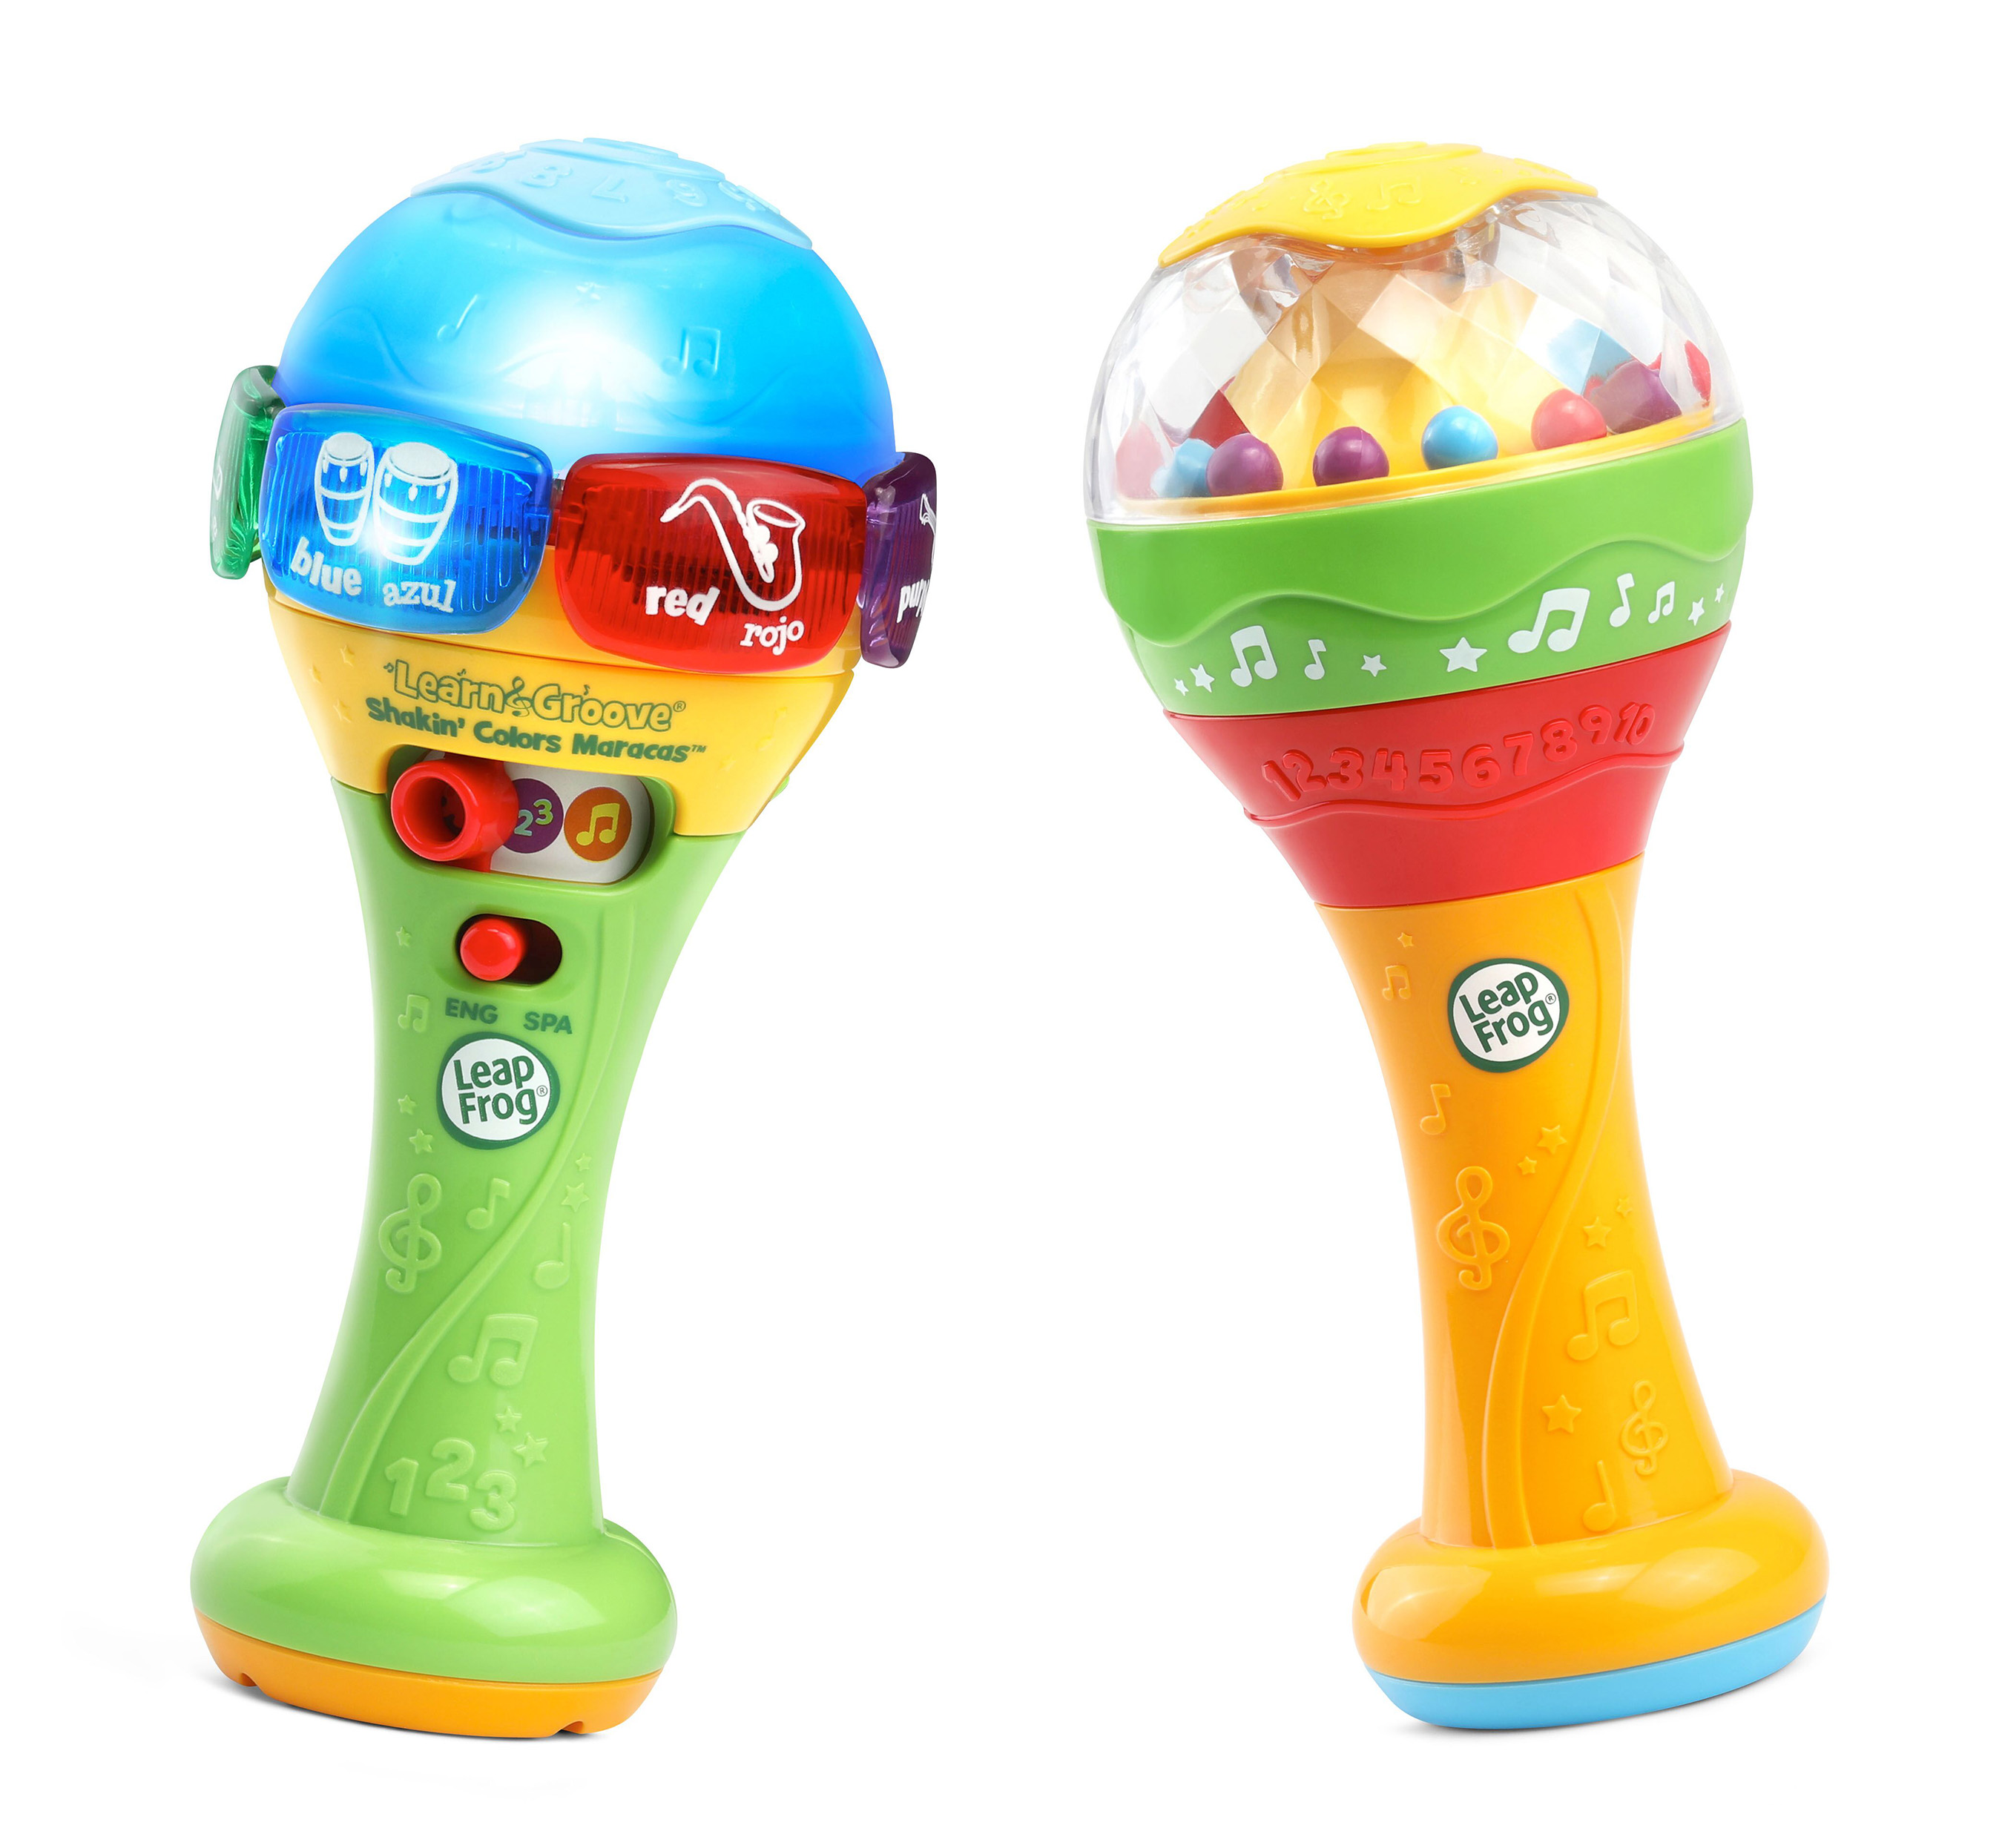 LeapFrog® expands its infant and preschool collection with new learning toys, such as the LeapFrog® Learn & Groove® Shakin' Colors Maracas™.